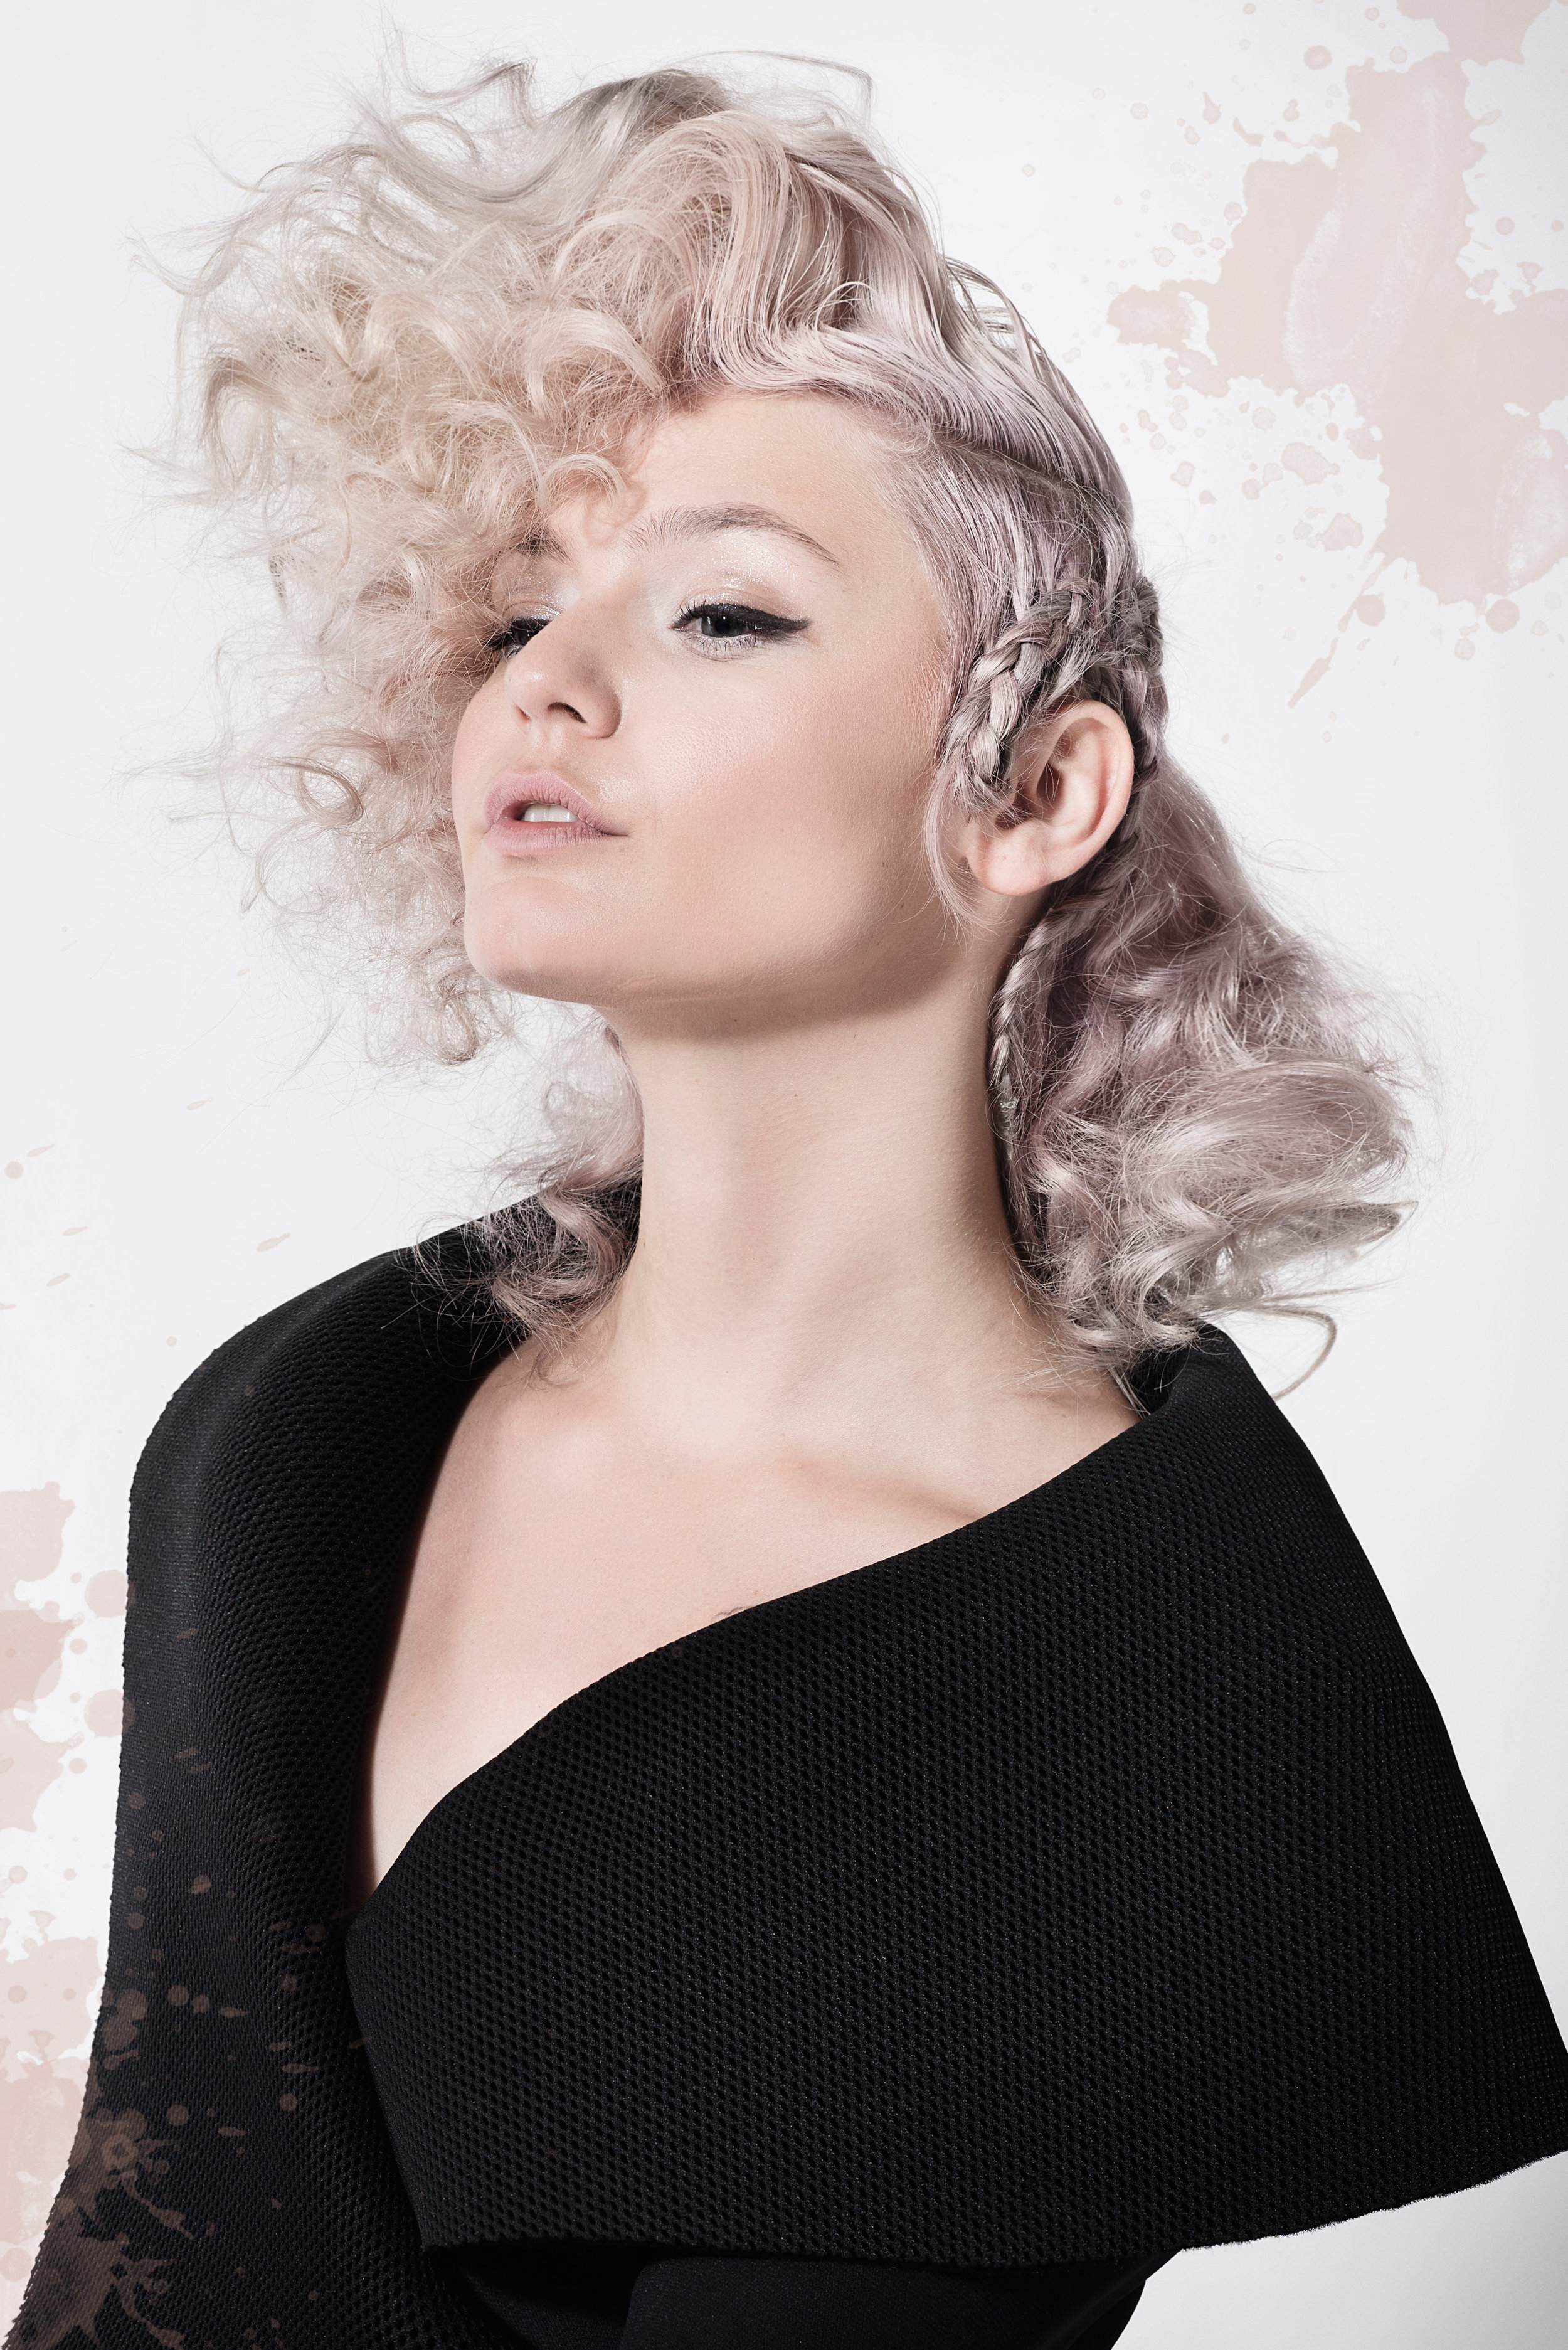 Hair by Anthony Cress